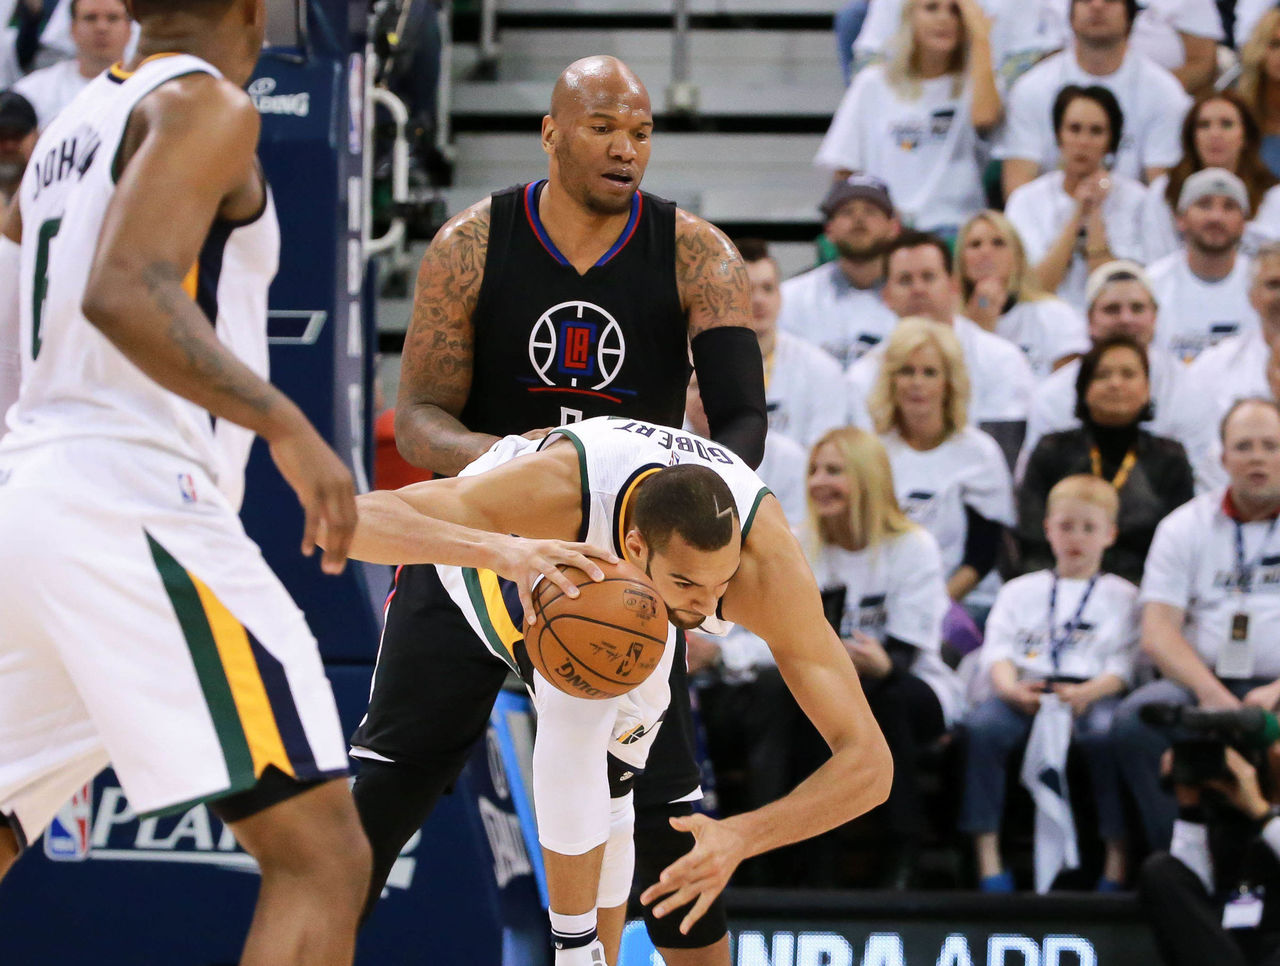 Cropped_2017-04-29t034838z_1313710789_nocid_rtrmadp_3_nba-playoffs-los-angeles-clippers-at-utah-jazz